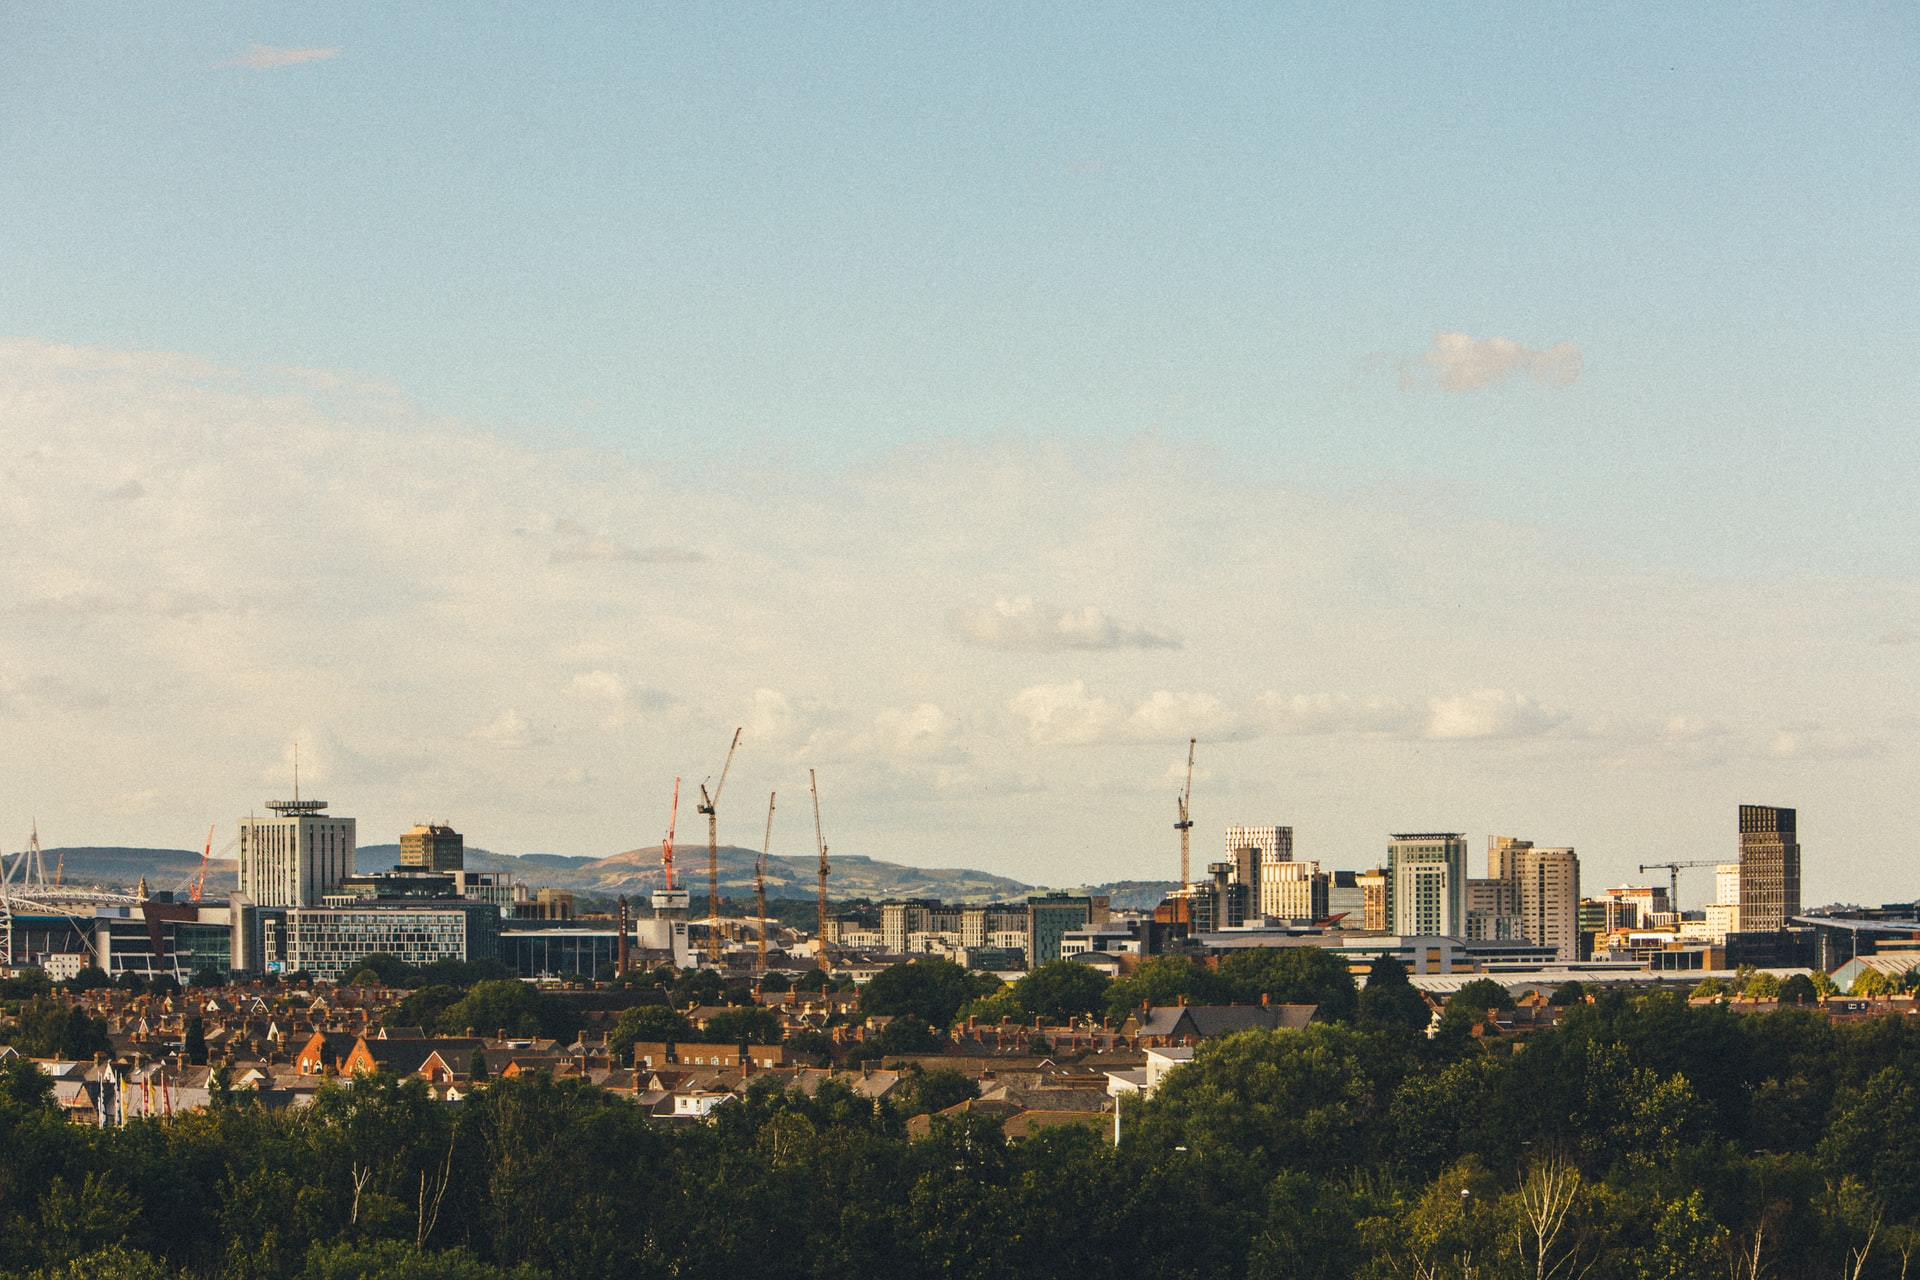 Image is a landscape photo of Cardiff's skyline in day time with a sunny blue sky and a few clouds.